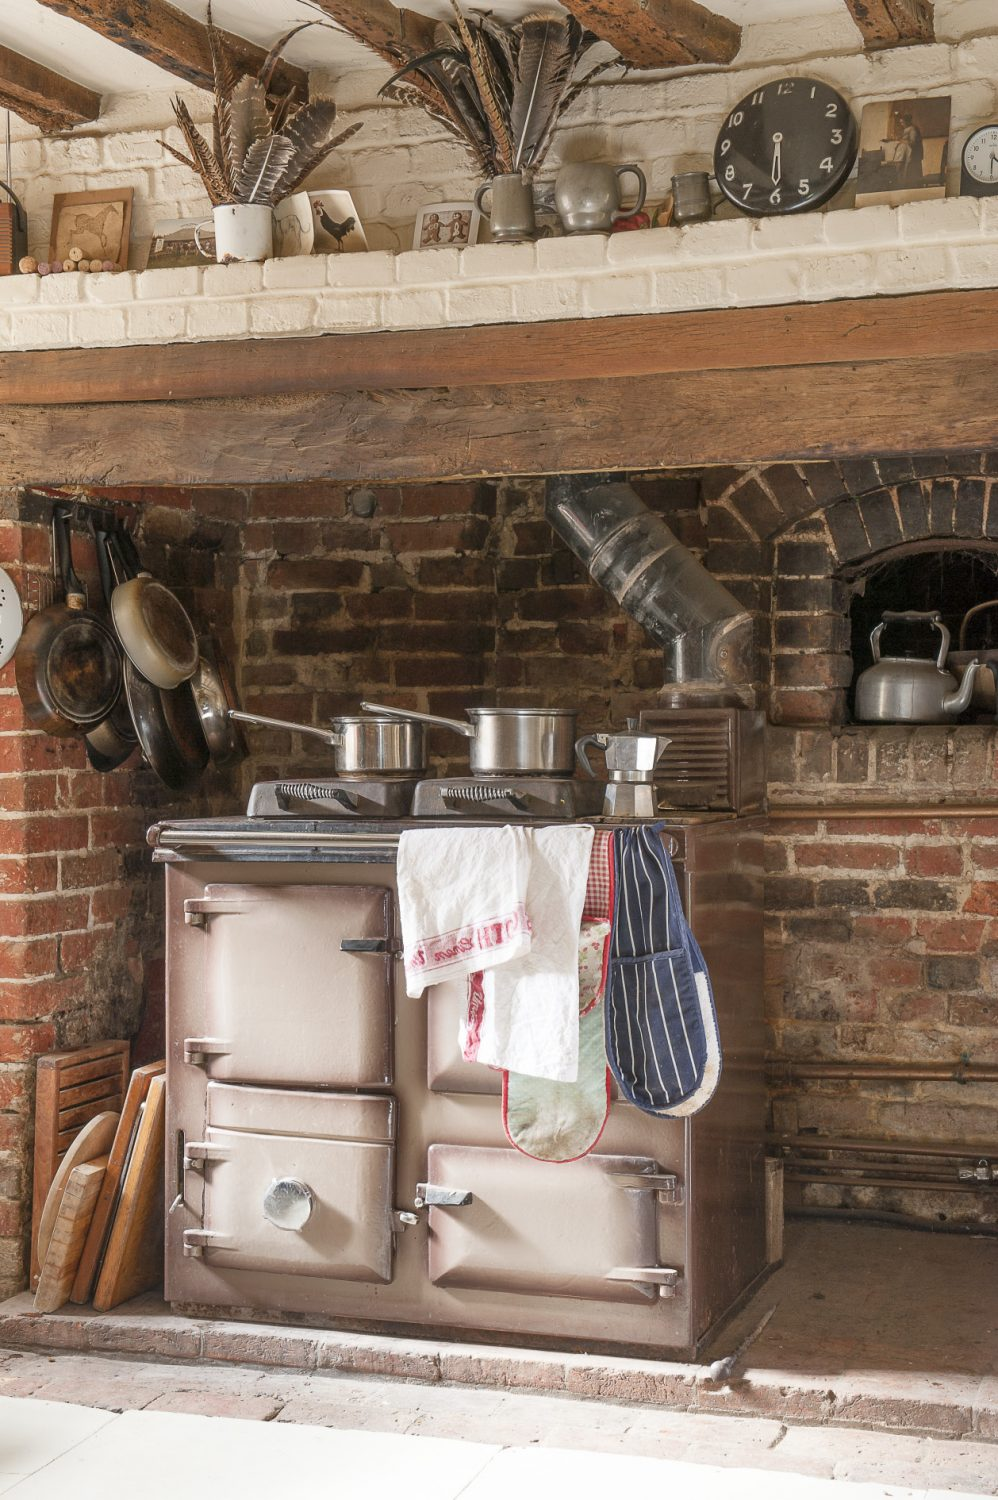 One of the only fixed pieces in the kitchen is the 1970s Rayburn that nestles in the sizeable inglenook